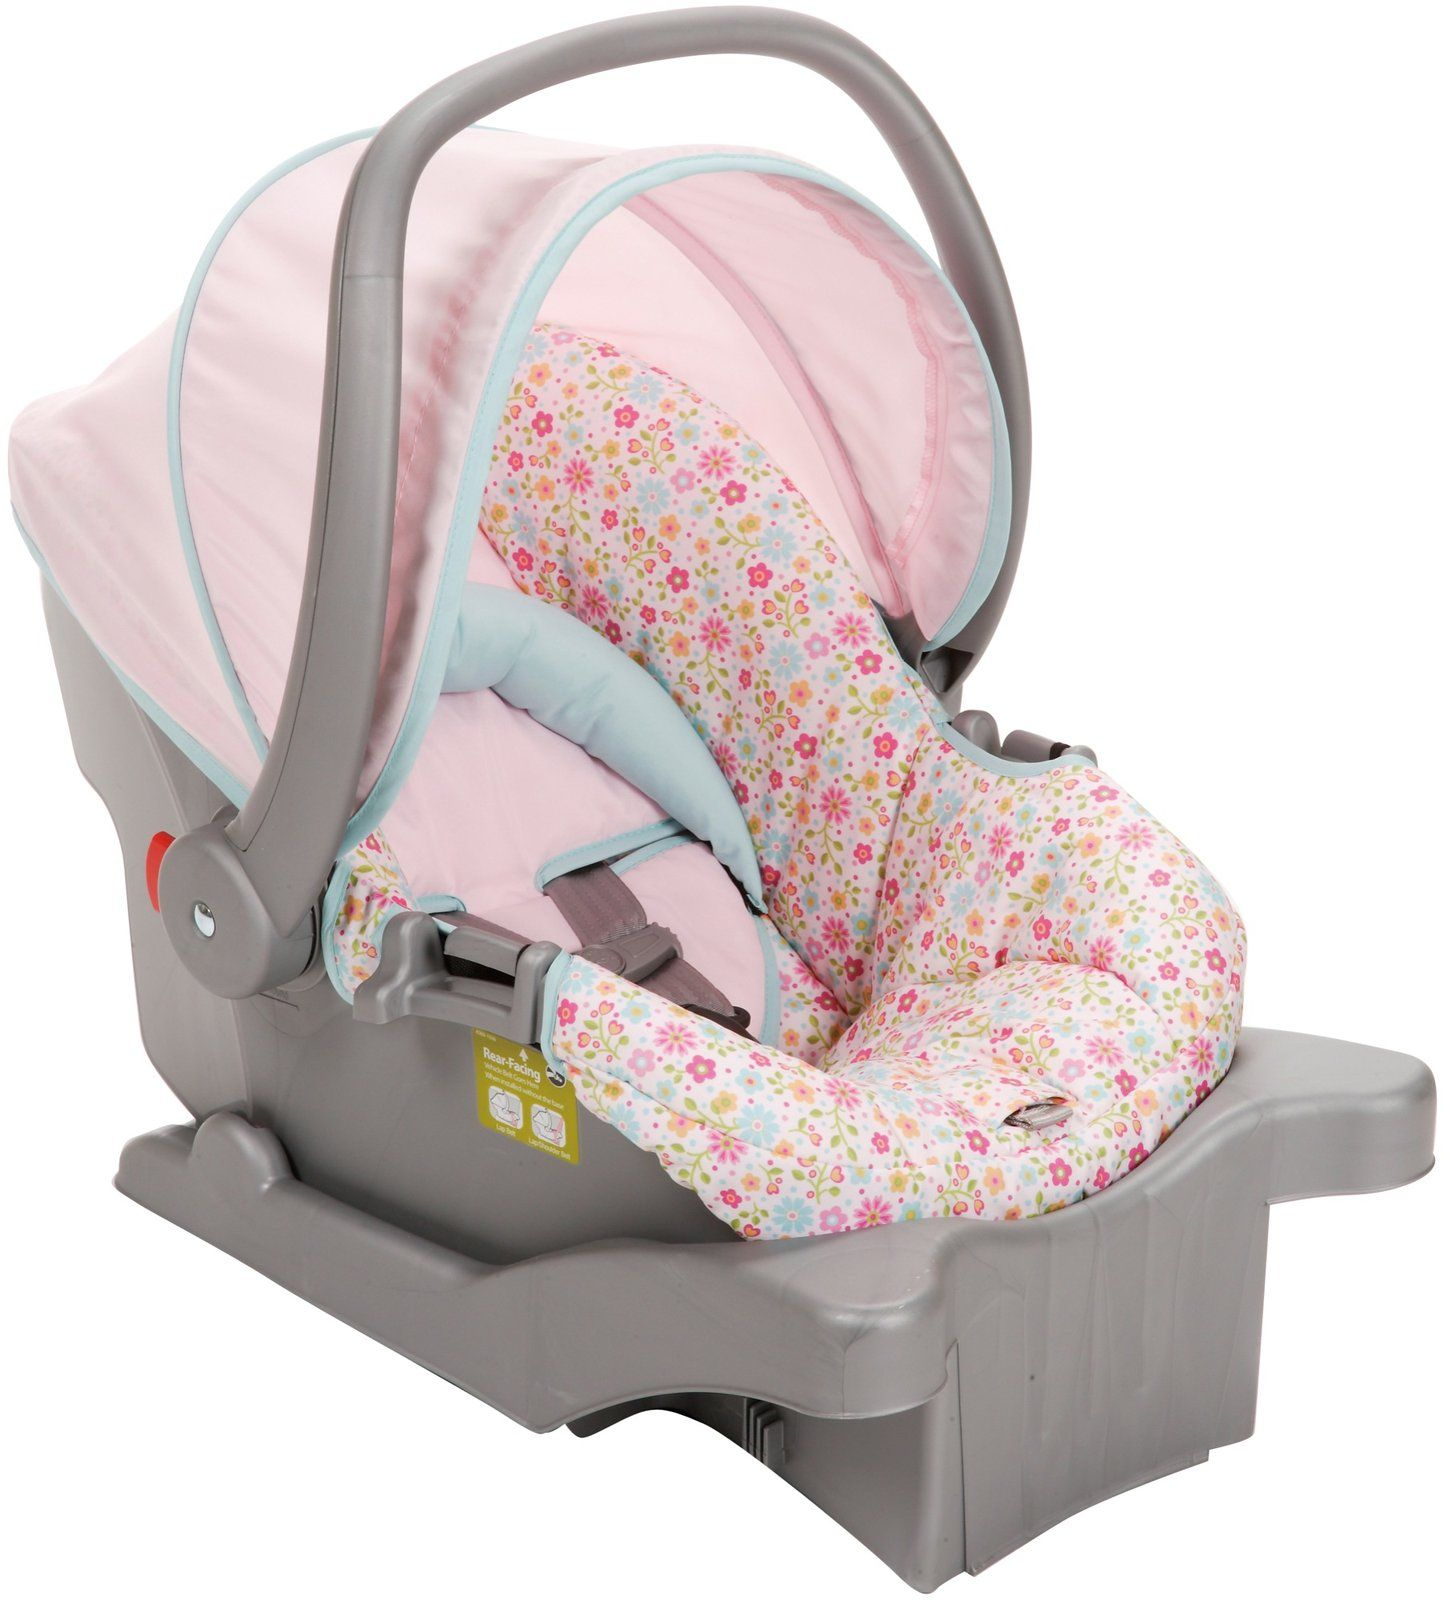 The Safety 1st Comfy Carry Elite Plus Infant Car Seat is FAA ...